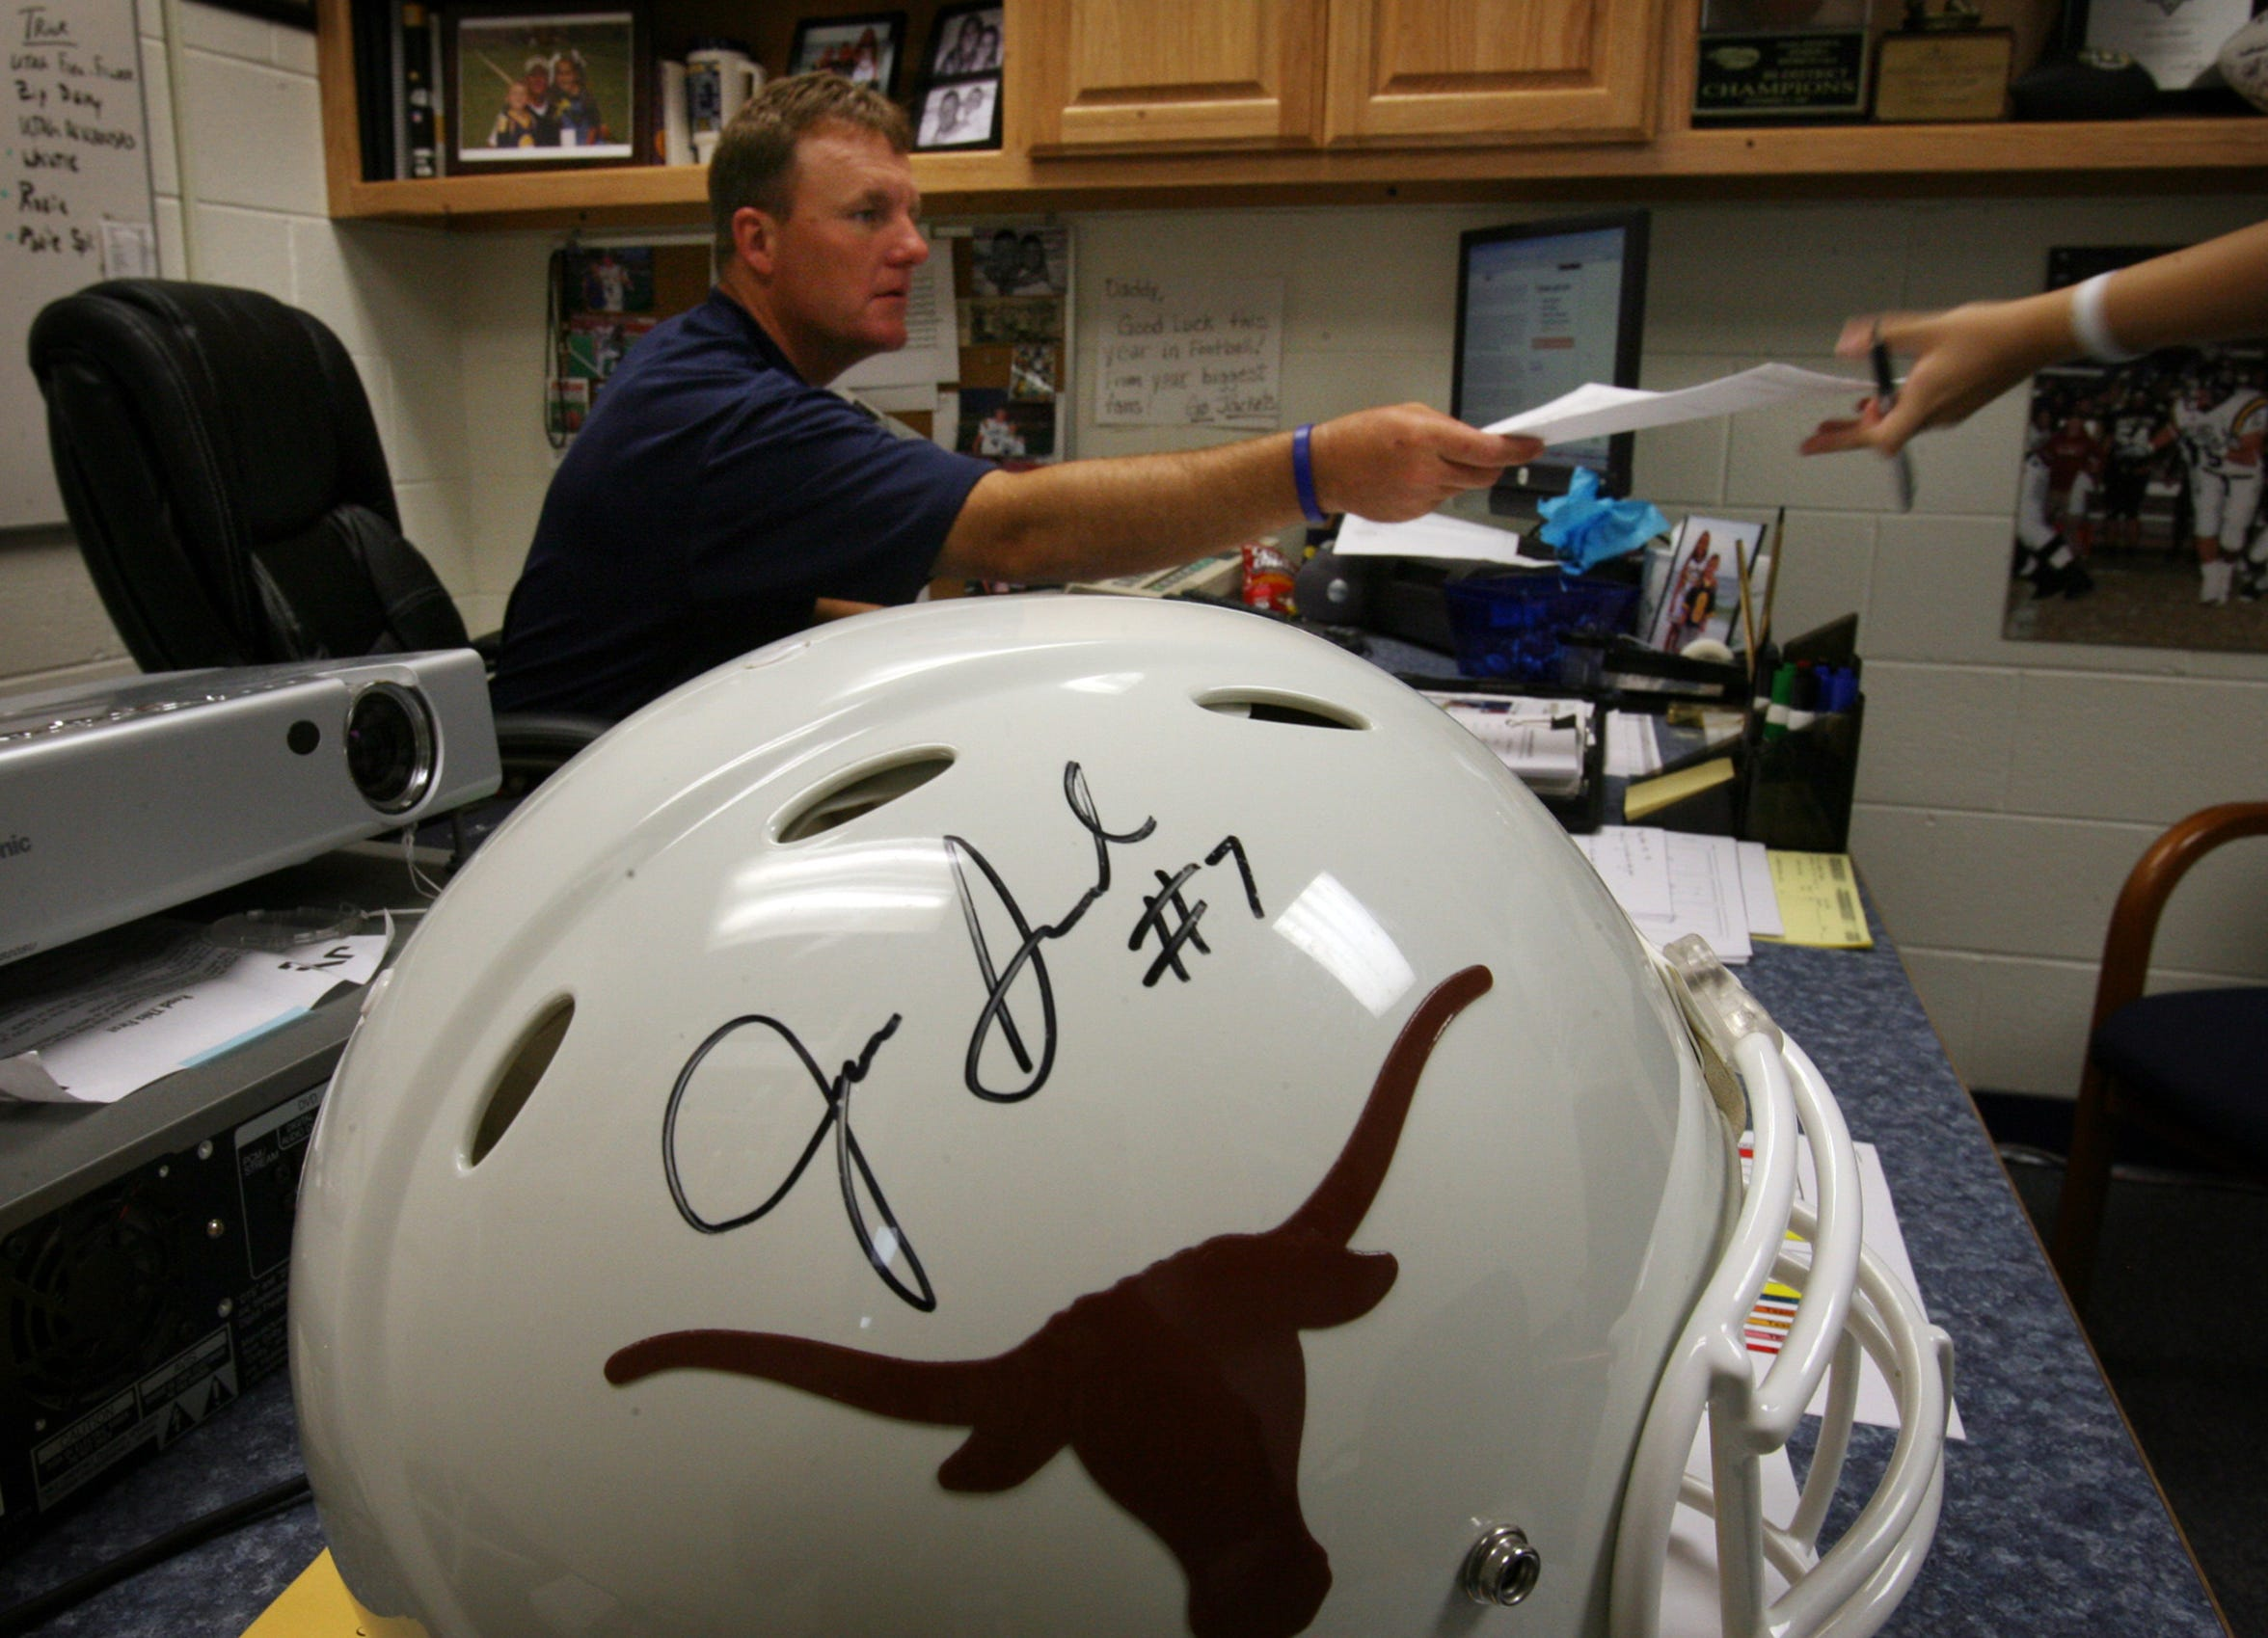 A Longhorn helmet autographed by Jevan Snead sits on the desk of his high school coach Chad Morris at Stephenville High School in Stephenville on Wednesday, Aug. 23, 2006.